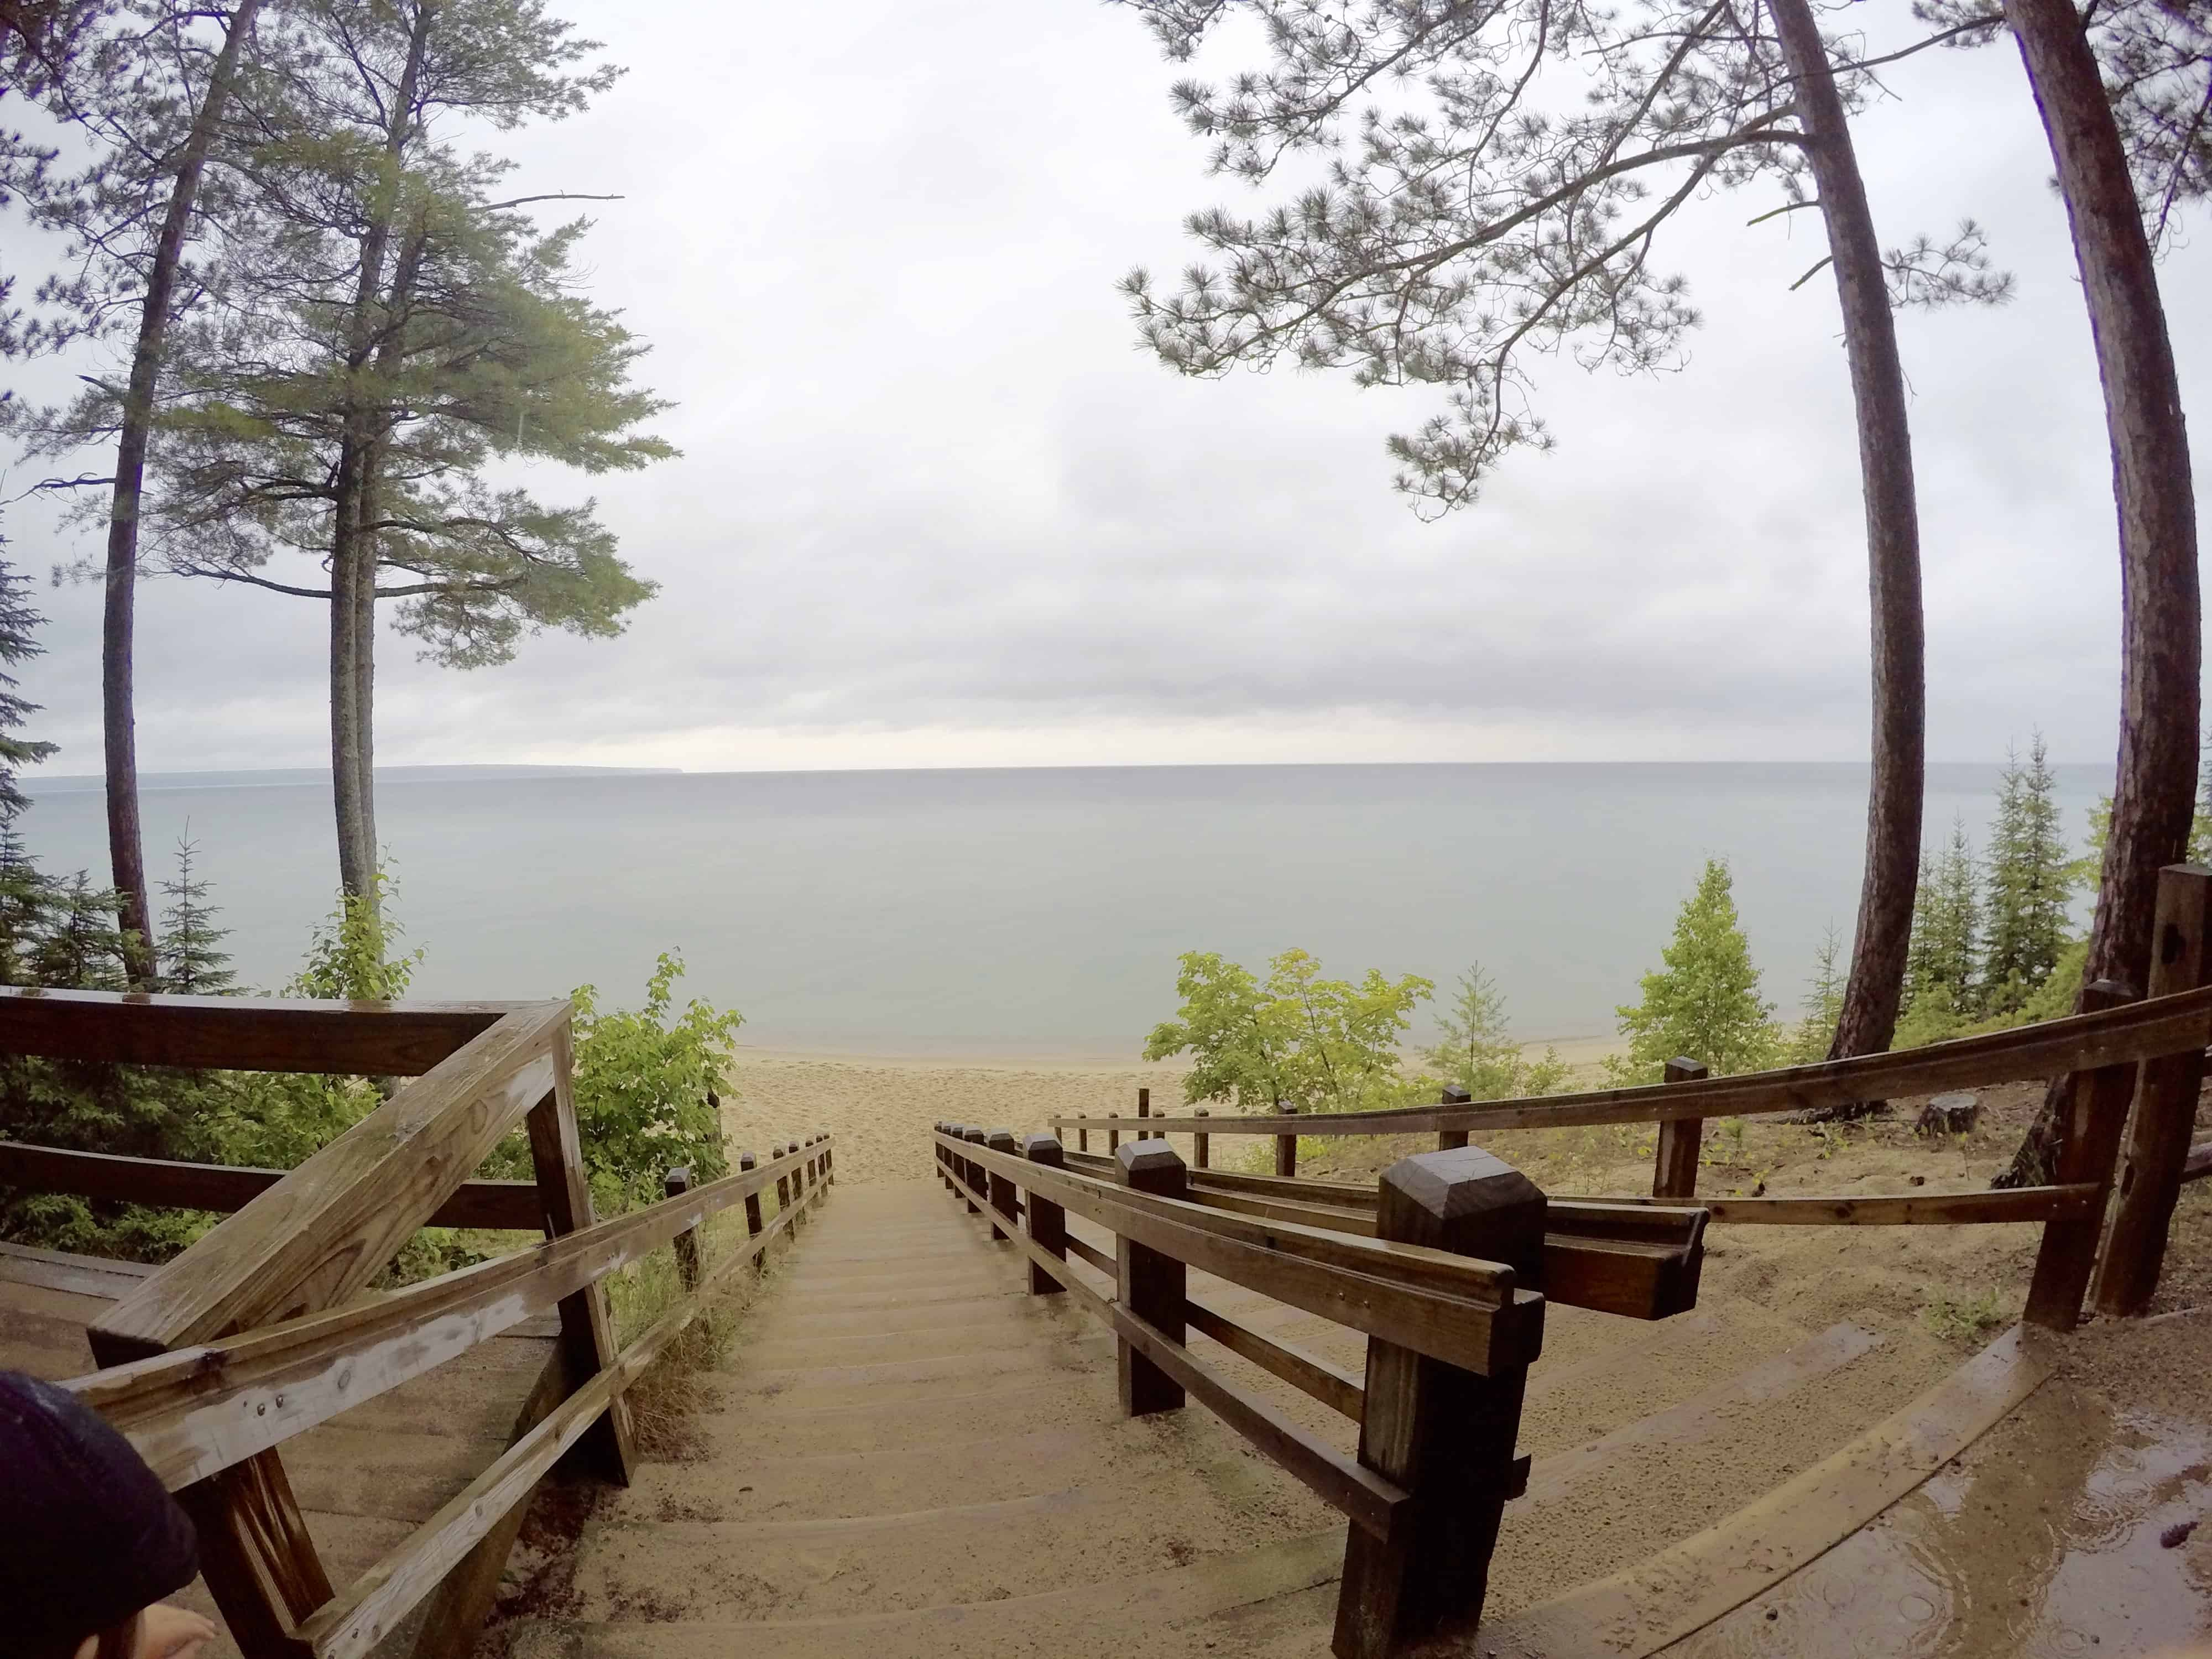 The Secret of Miner's Beach, Pictured Rock National Lakeshore, Munising, Michigan on Lake Superior